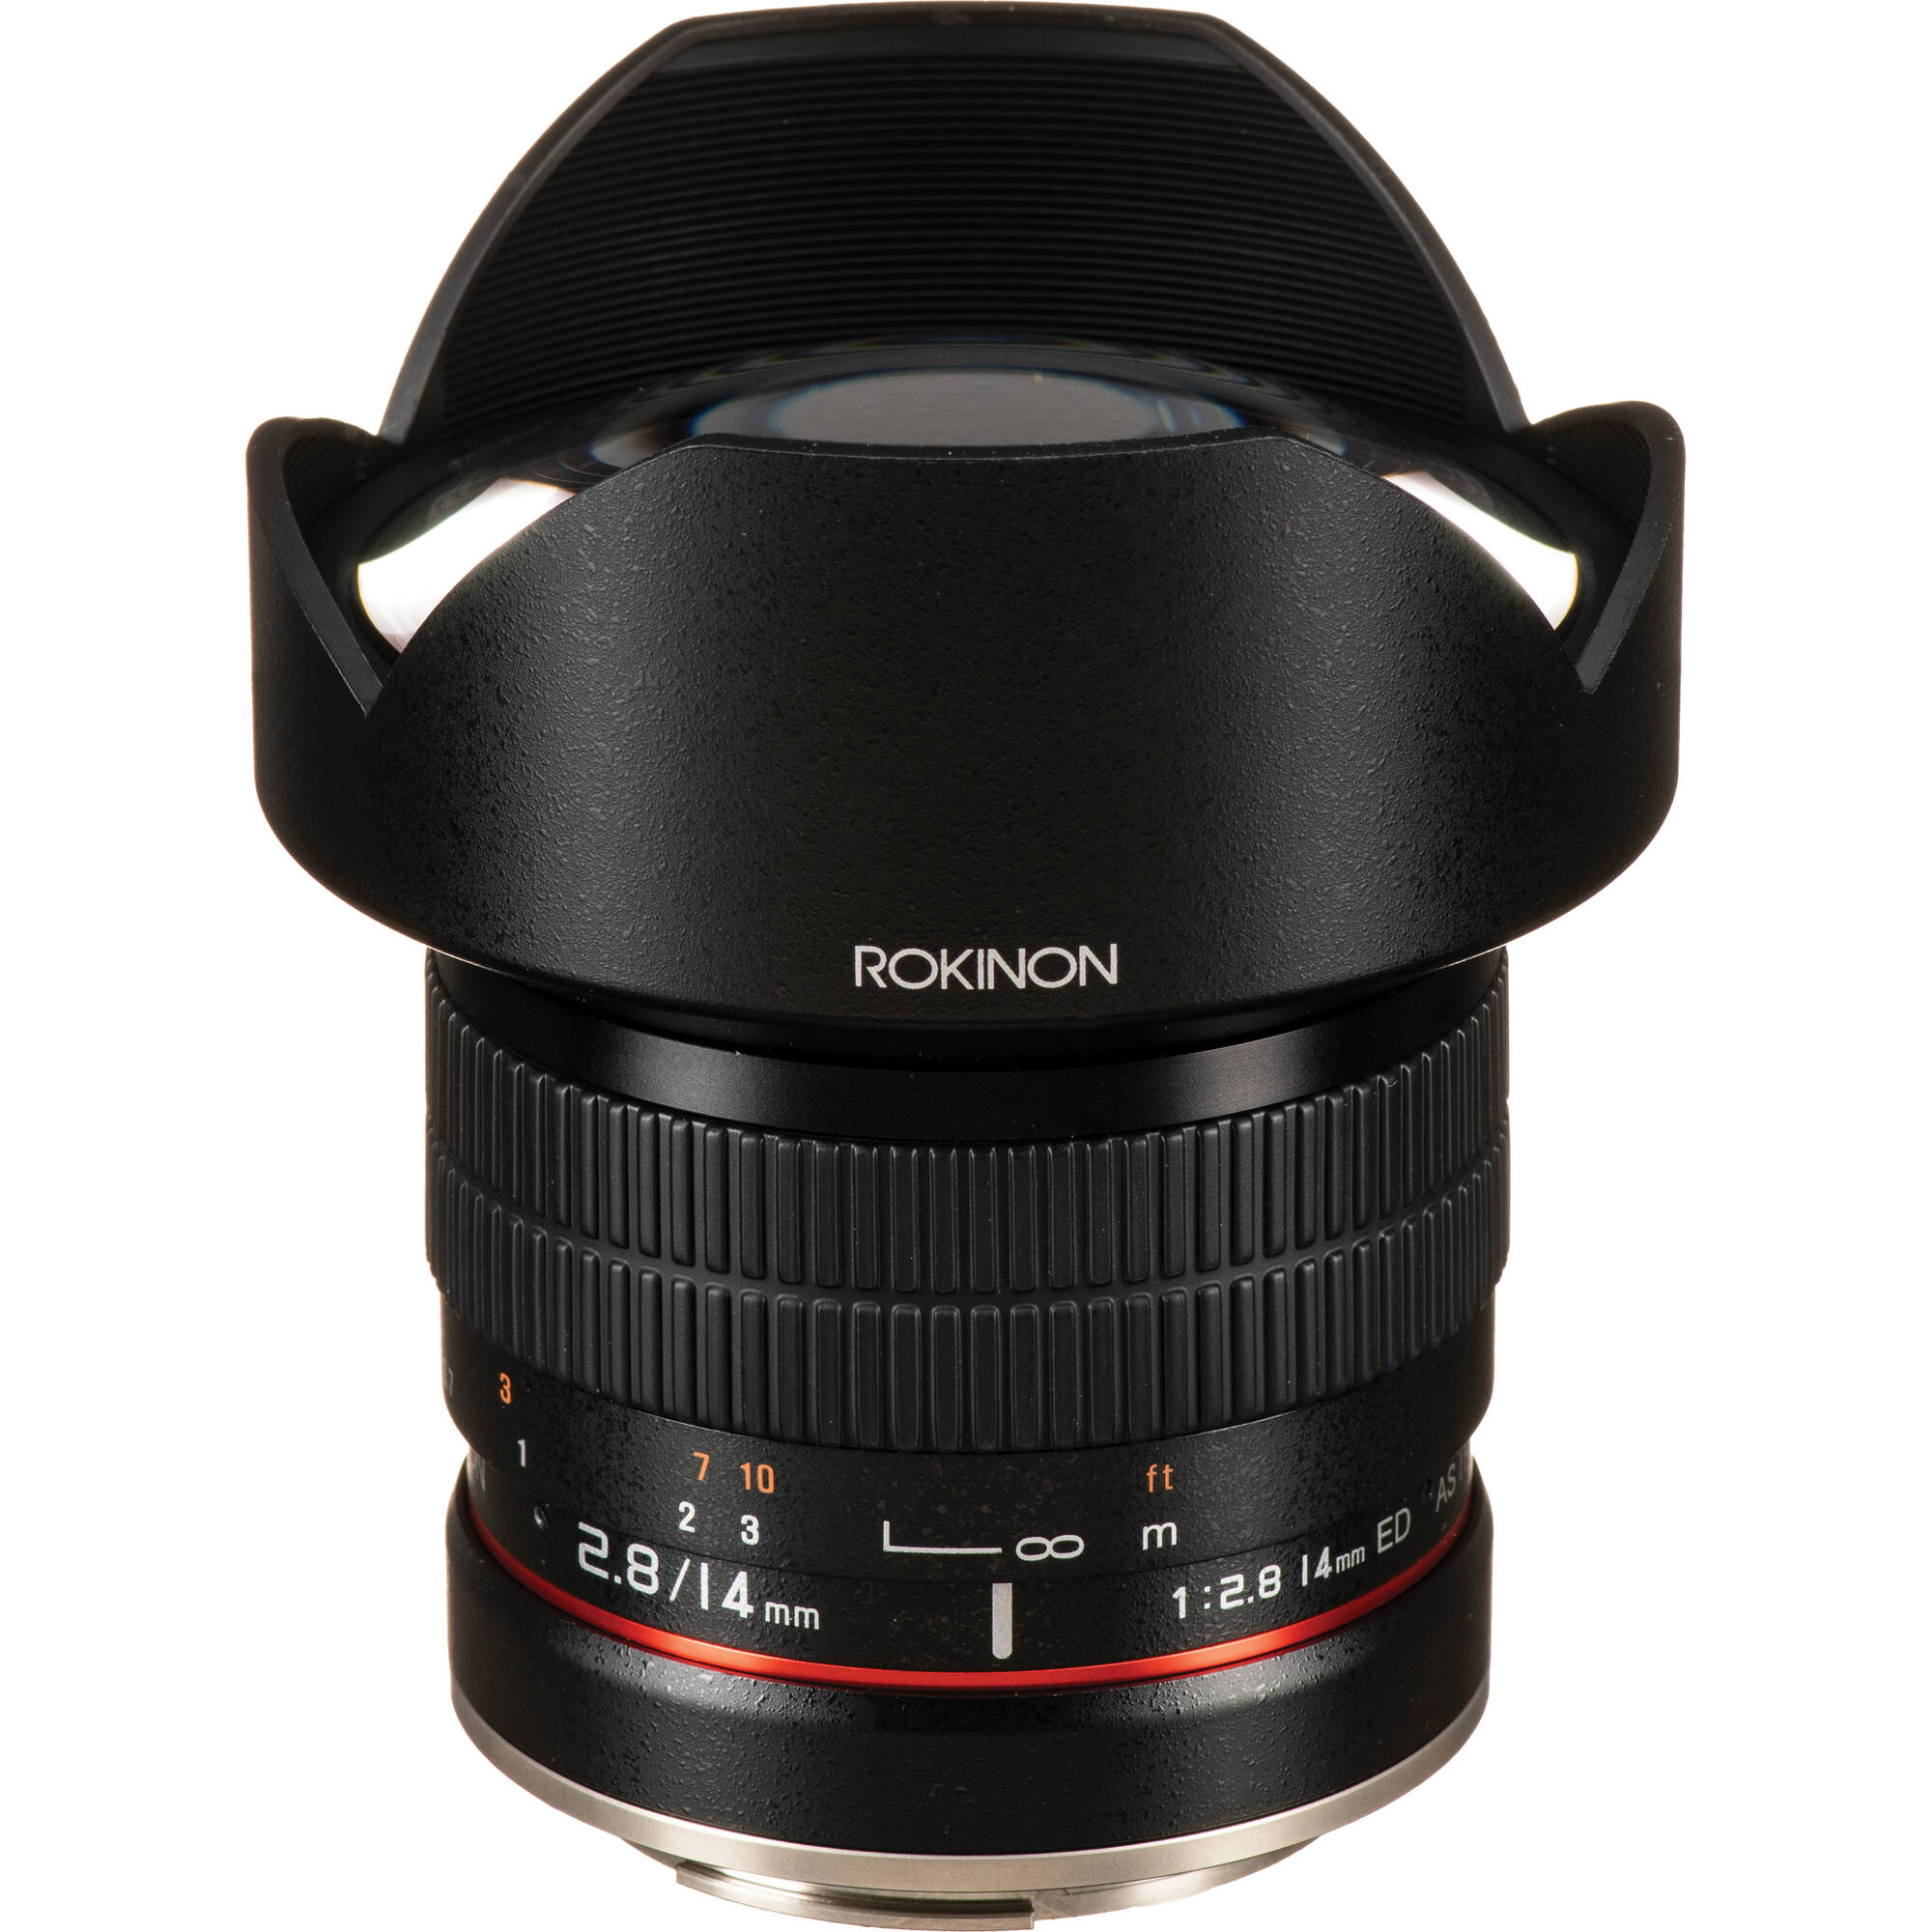 Rokinon 14mm f/2 8 IF ED UMC Lens For Canon EF with AE Chip